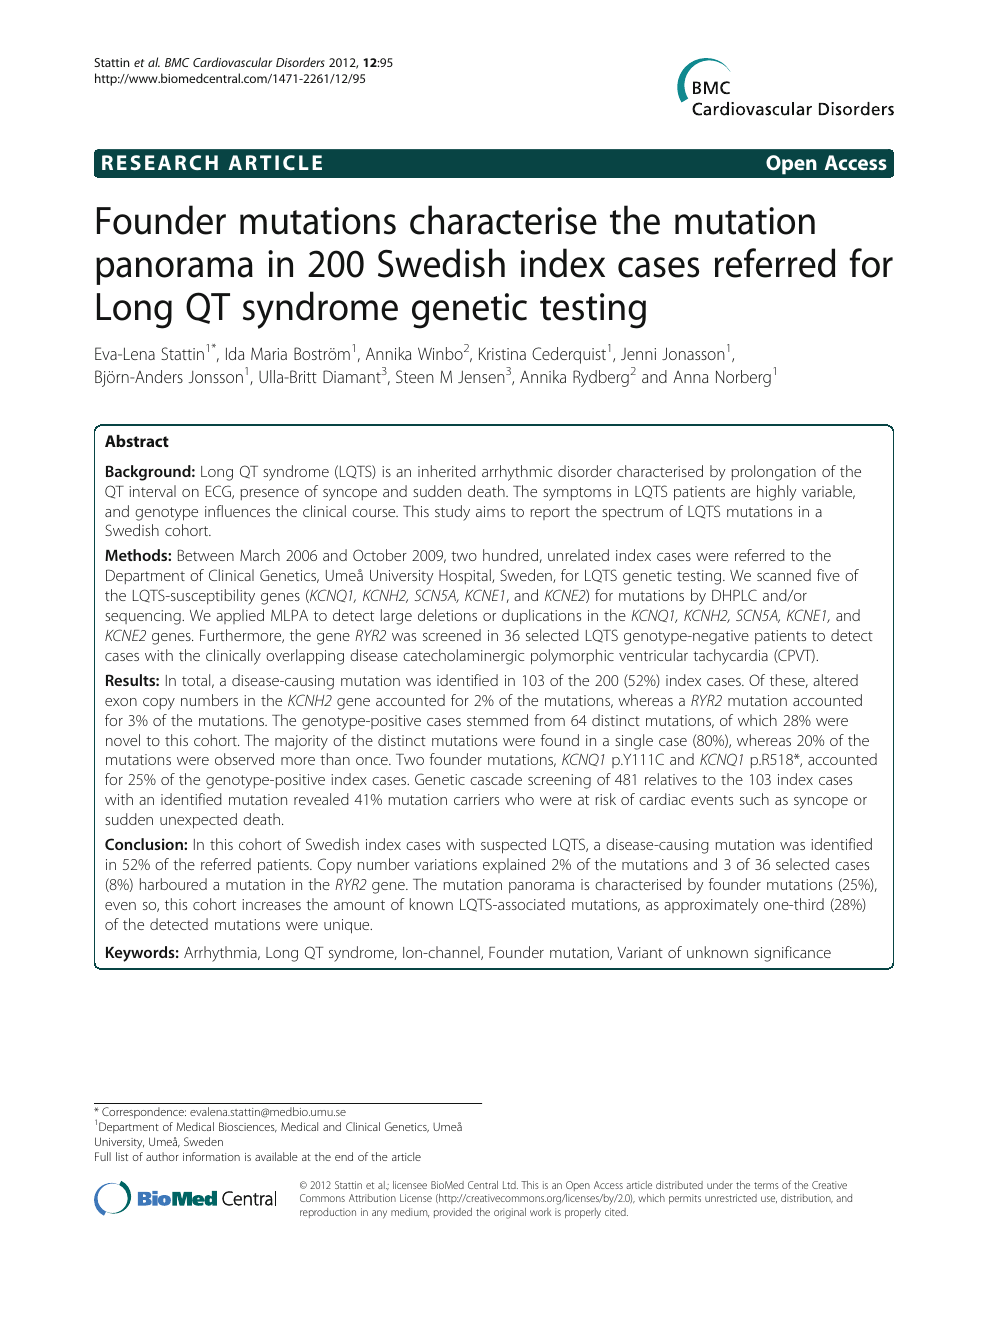 Founder mutations characterise the mutation panorama in 200